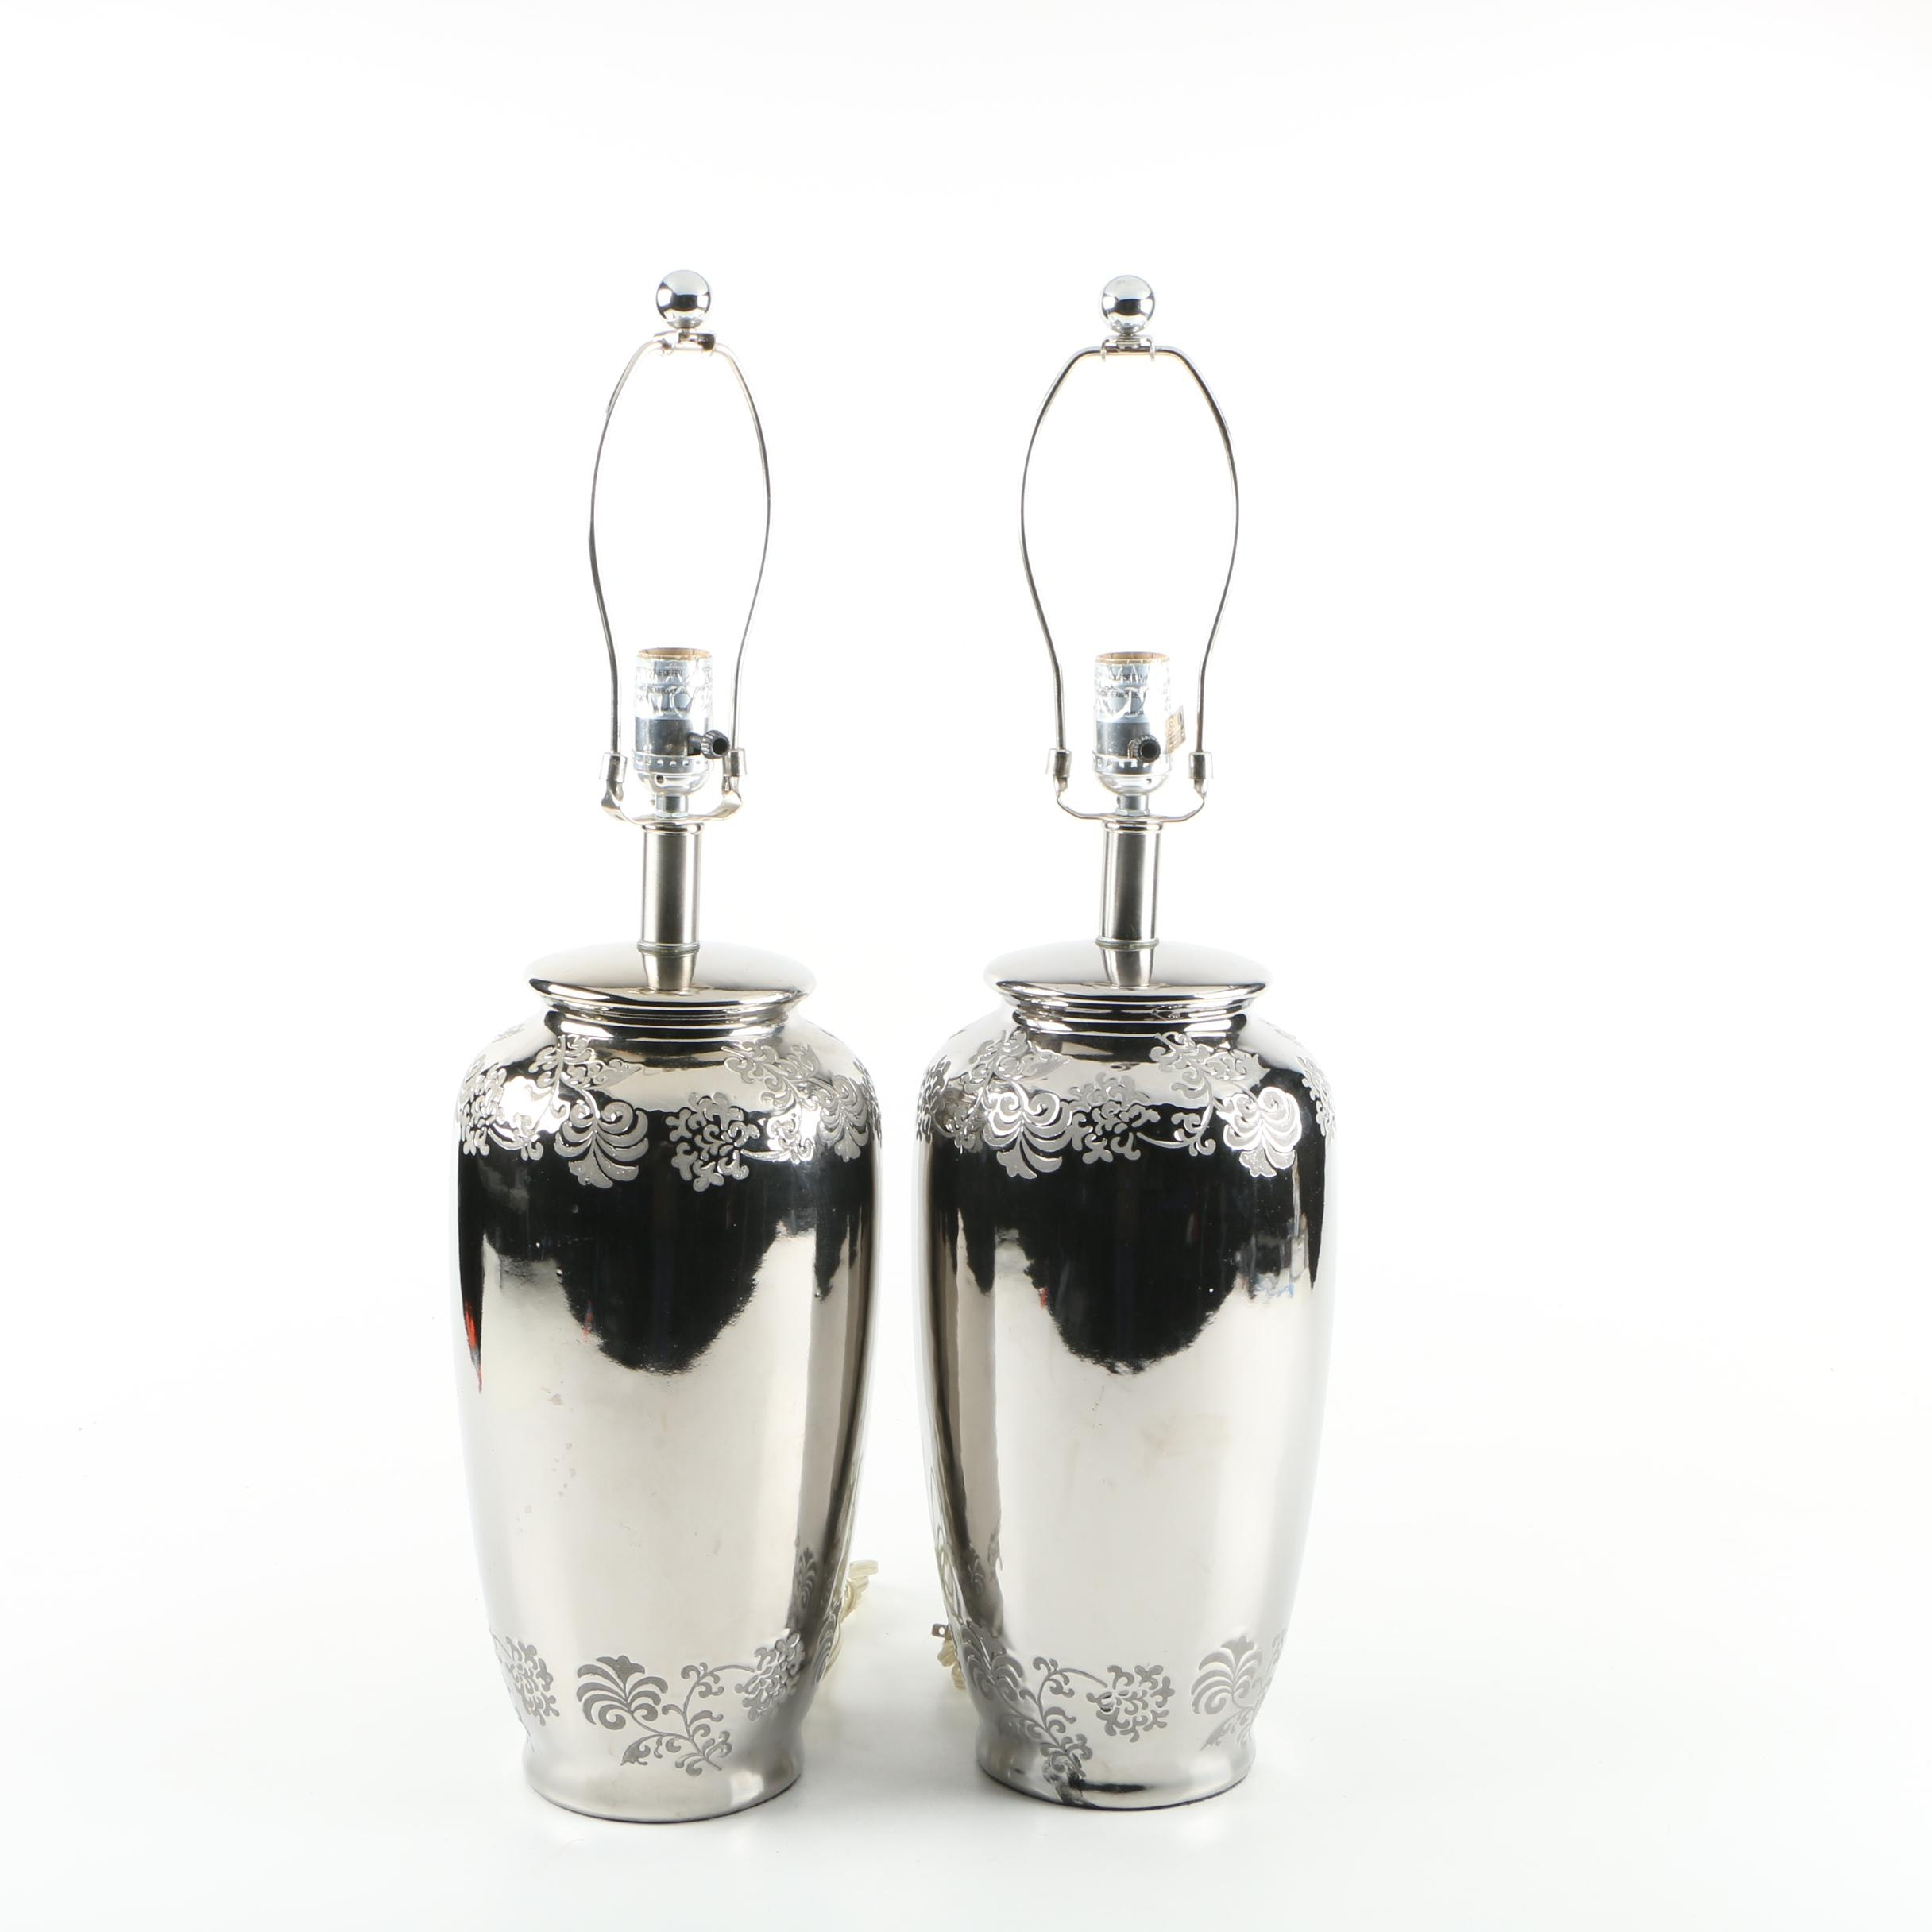 Silver Tone Metal Urn Style Table Lamp Pair